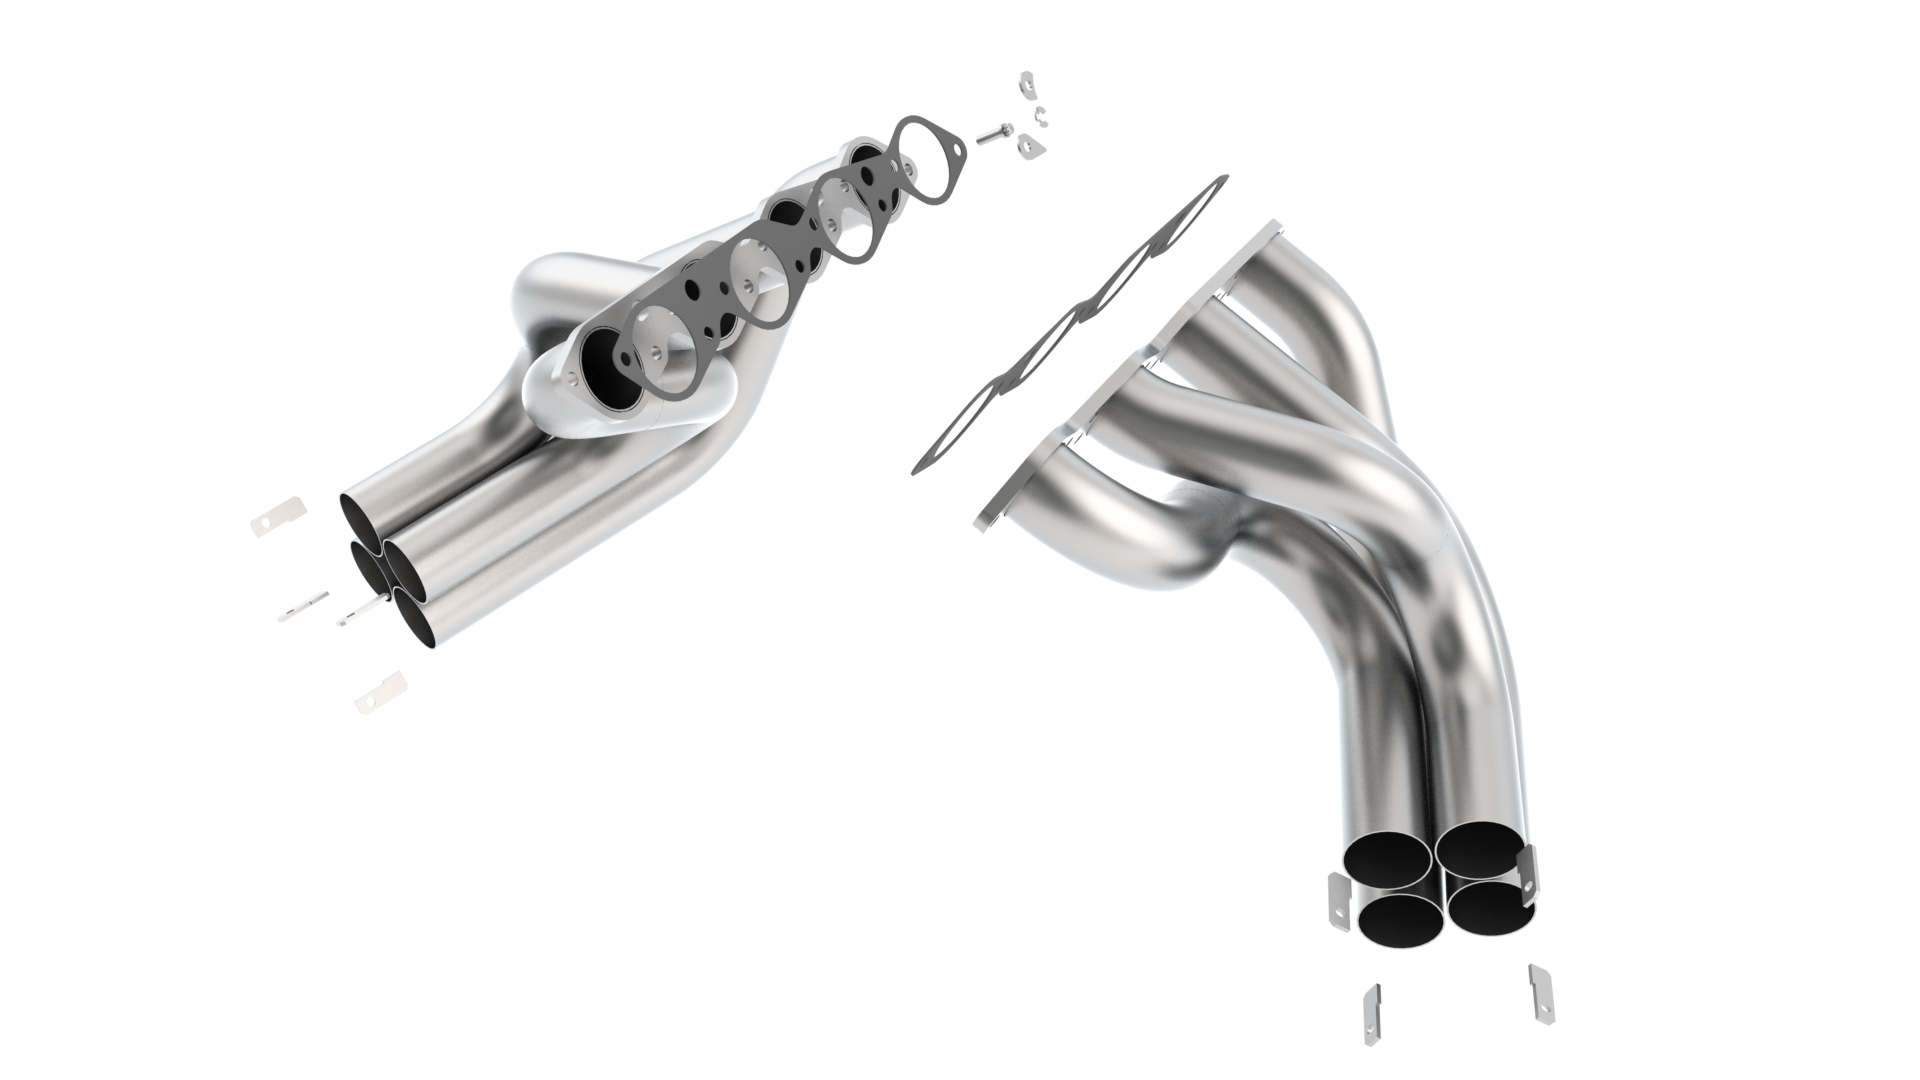 Borla Xr 1 Stainless Racing Dragster Headers